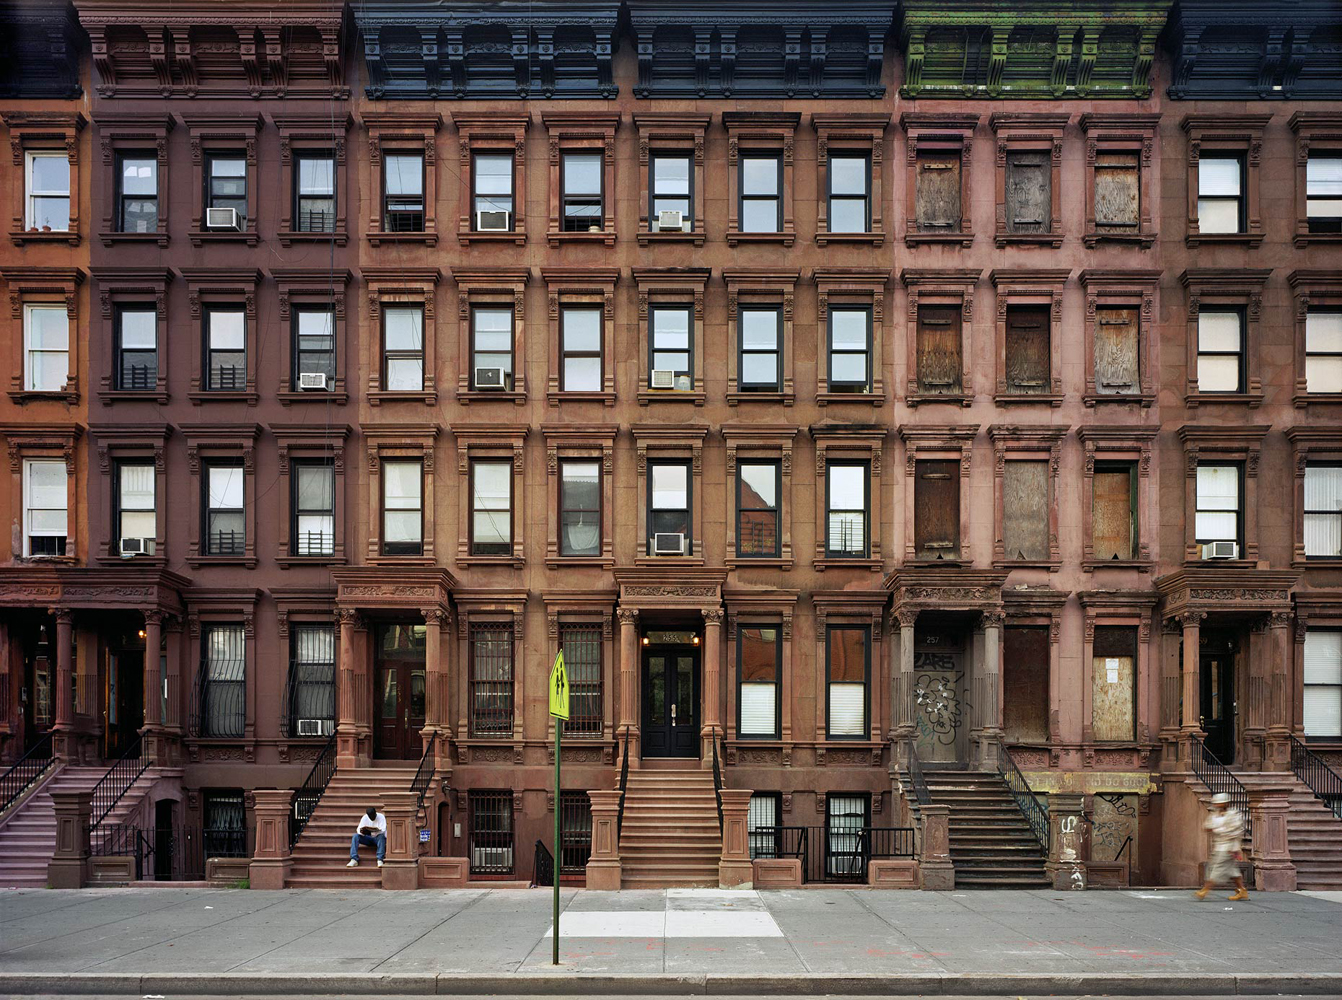 Brownstones, Lenox Avenue, Harlem, New York, 2005-2007, by David Leventi. Print on Dibond of the exterior street view of brownstone apartments